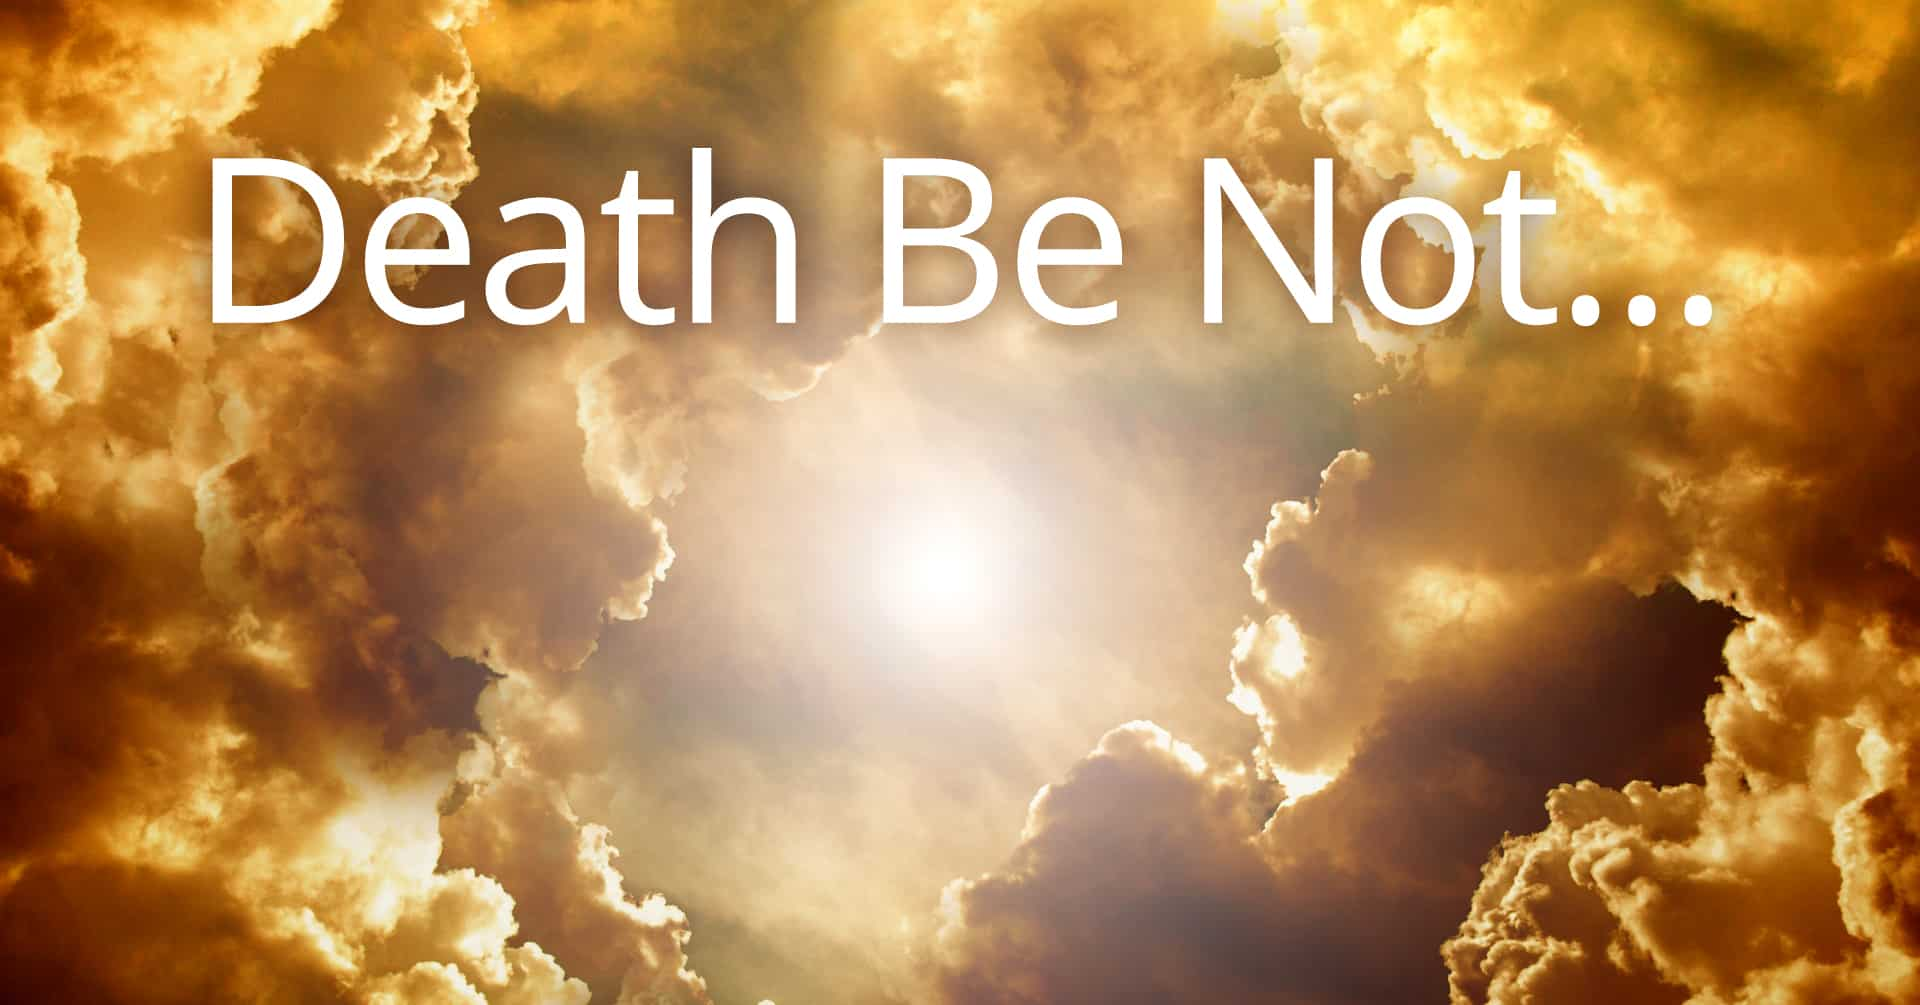 death be not - my question and answer session with God